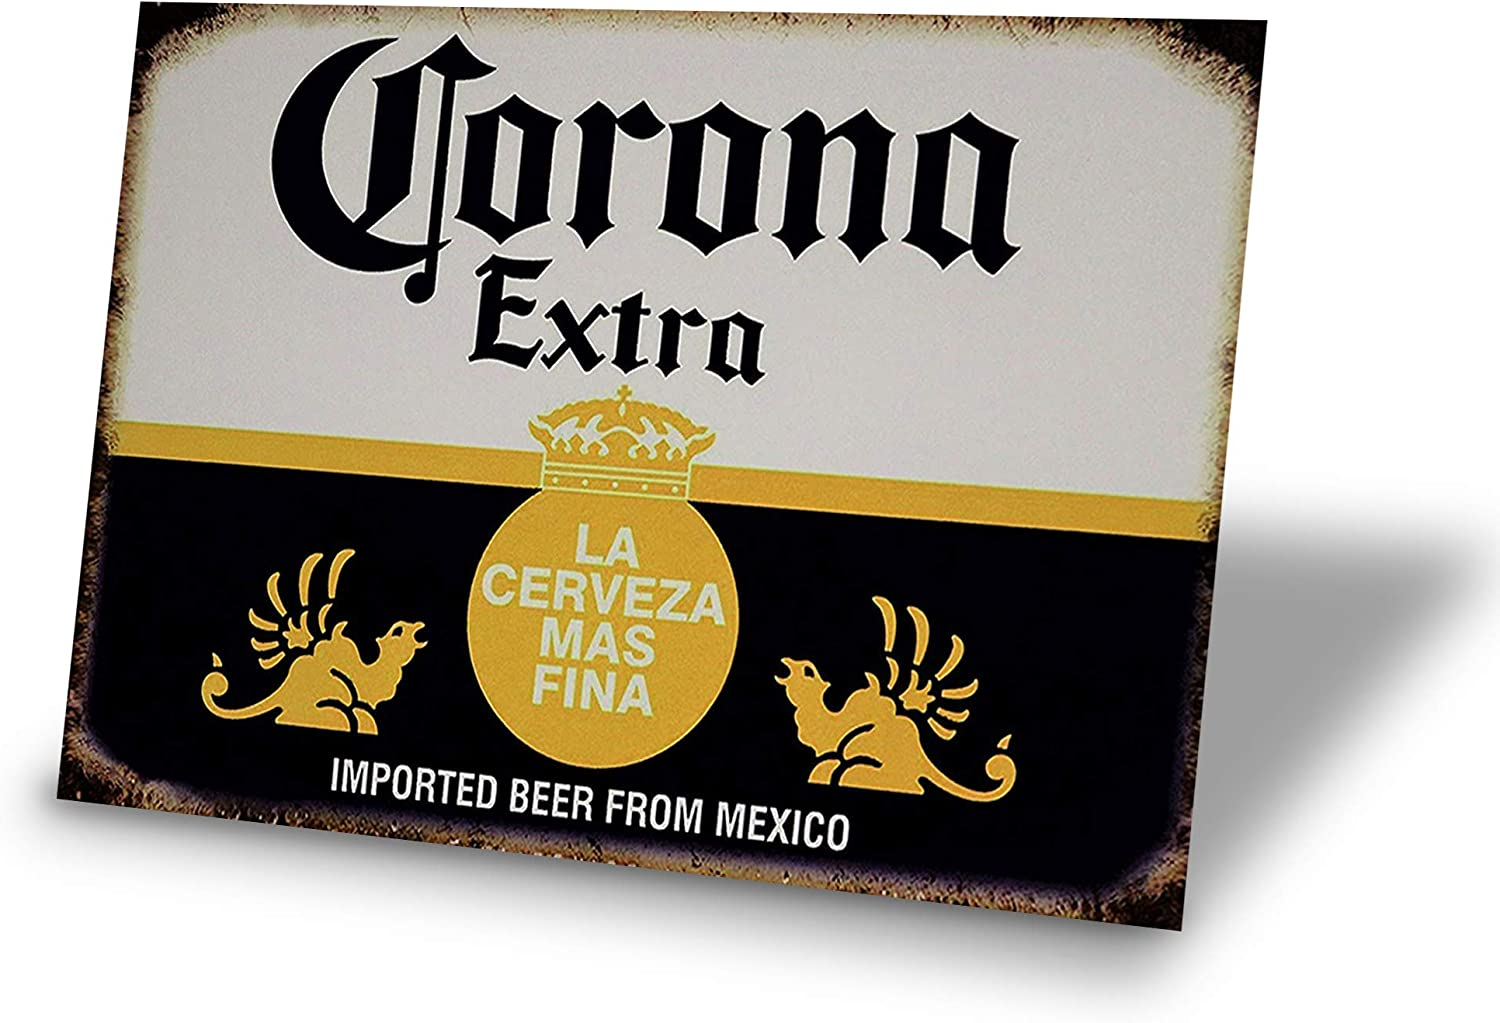 TINSIGNS Corona Extra Beer Man Cave Decor Metal Sign Alcohol Home Party Bar Retro Vintage Signs 8x12 Inch